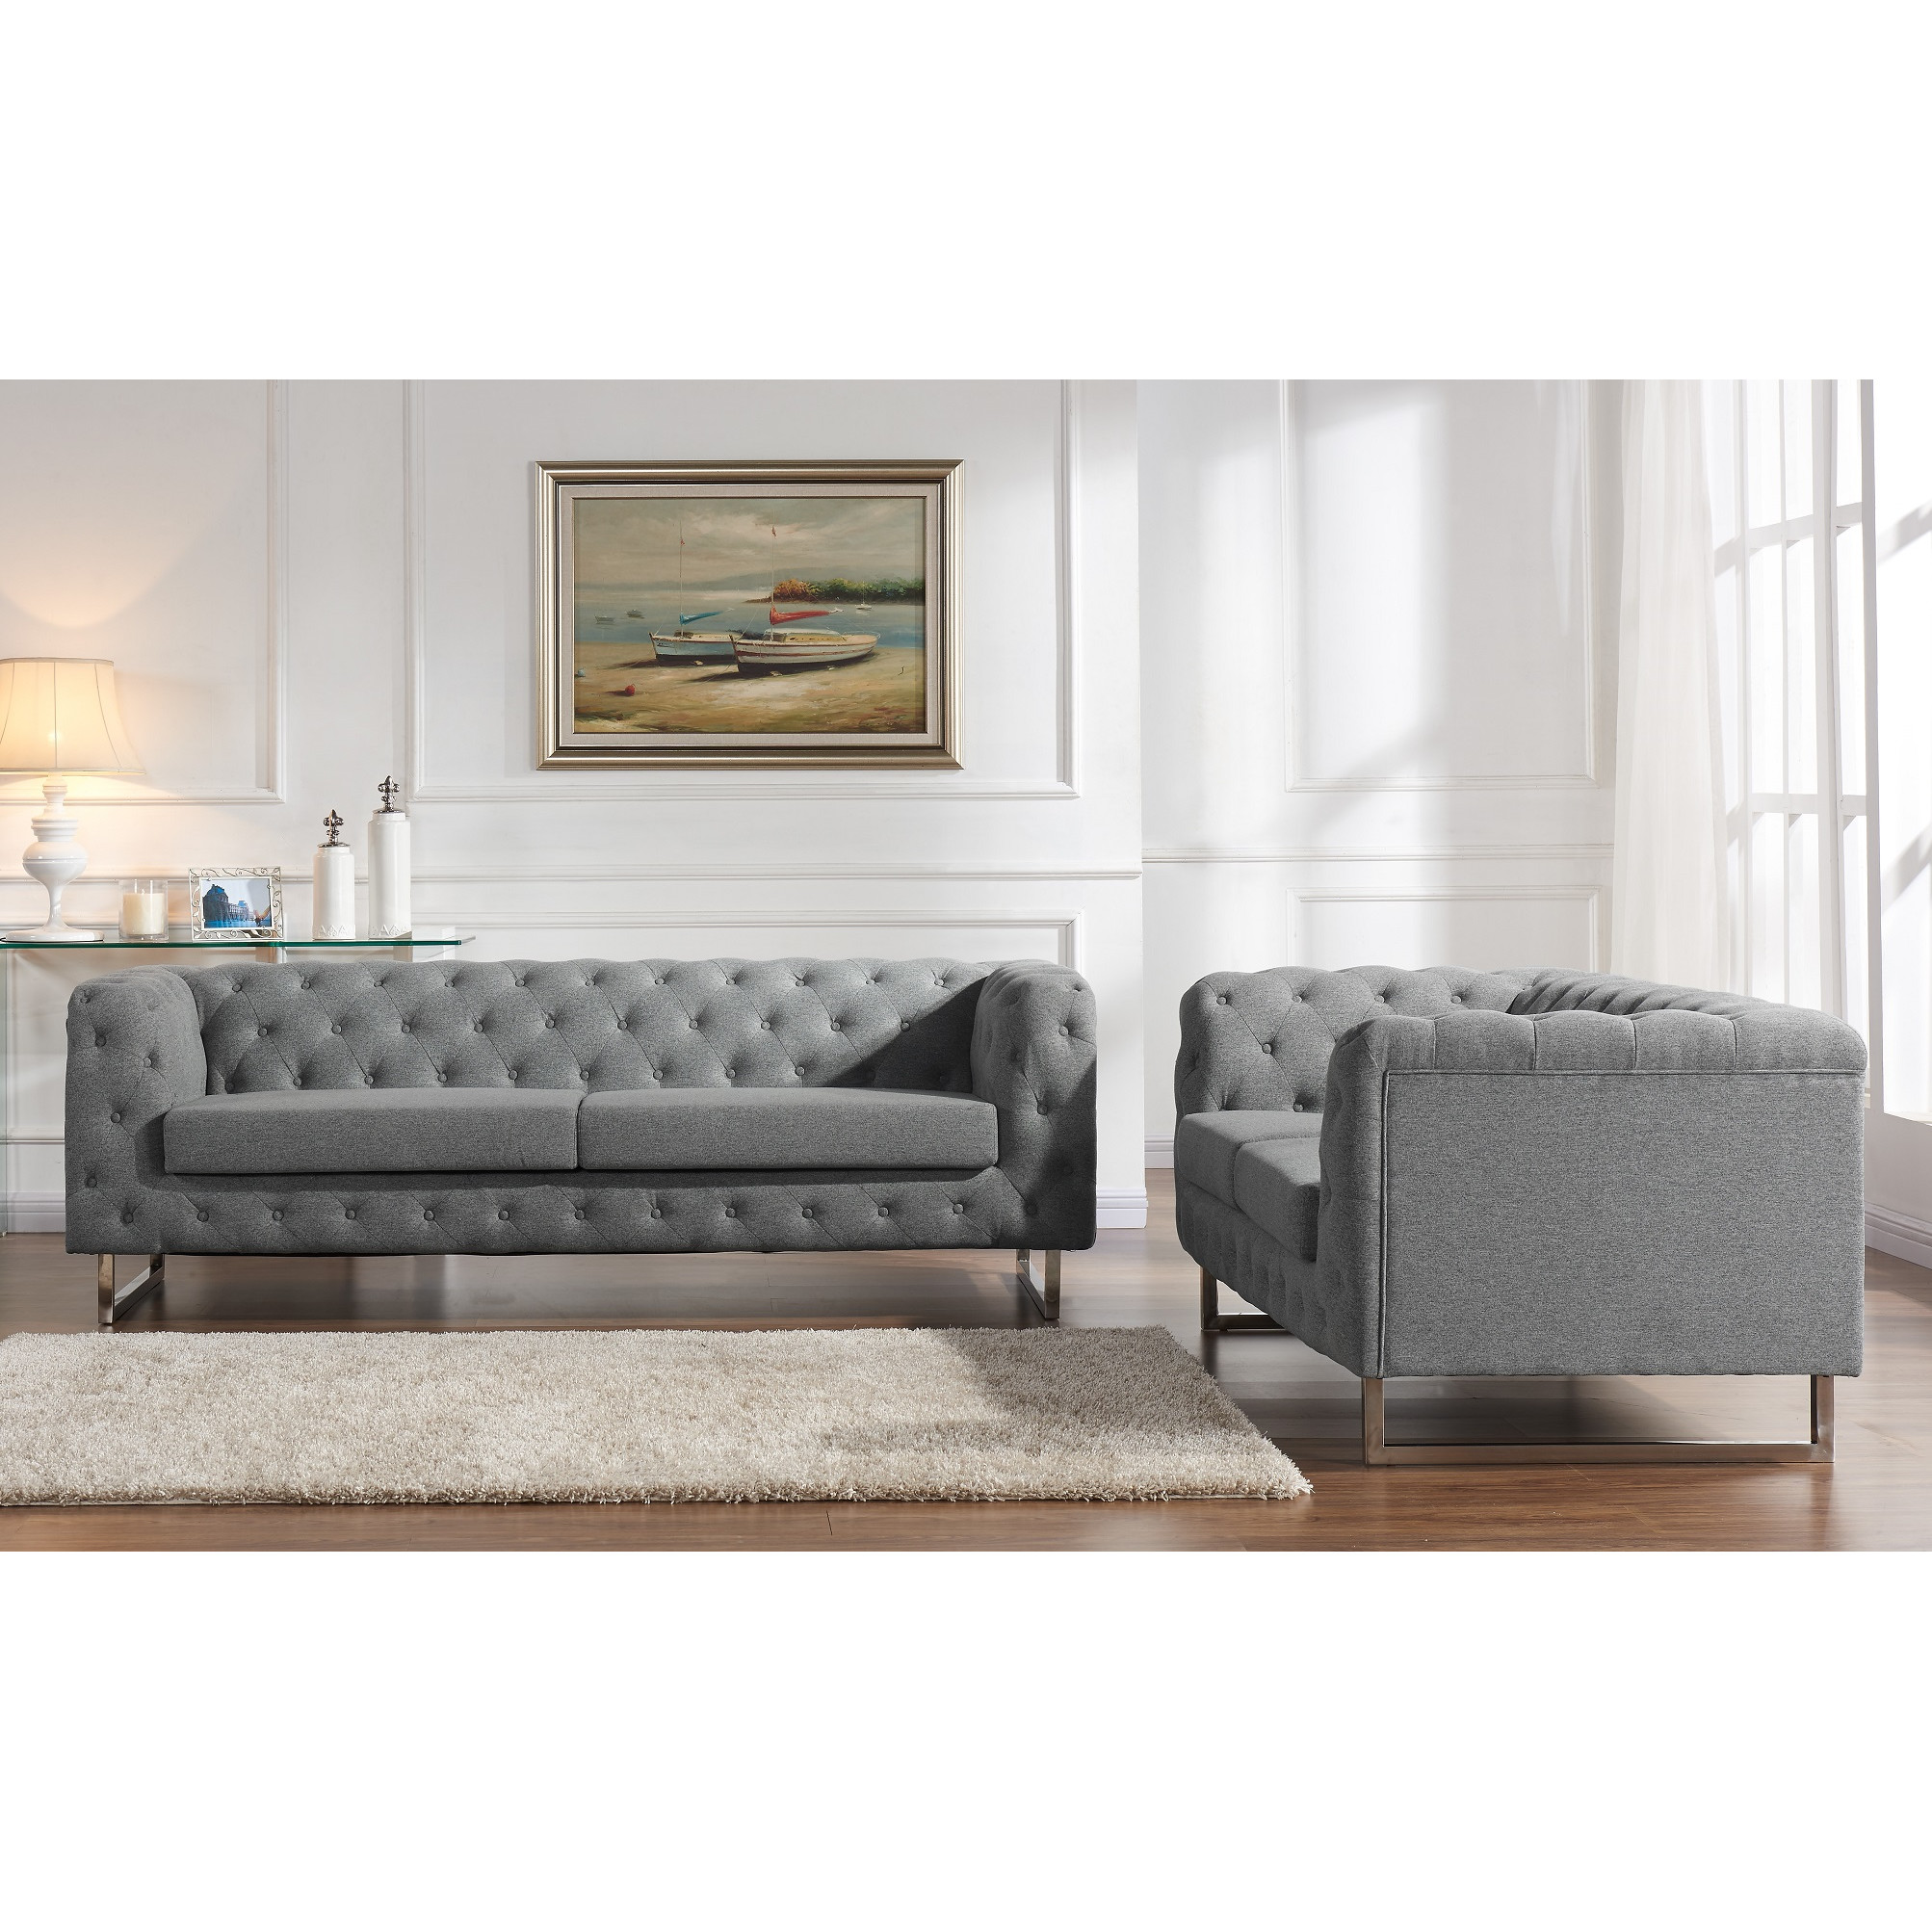 Gray Tufted Sofa Cheap Gray Color Tufted Sofa Between Square